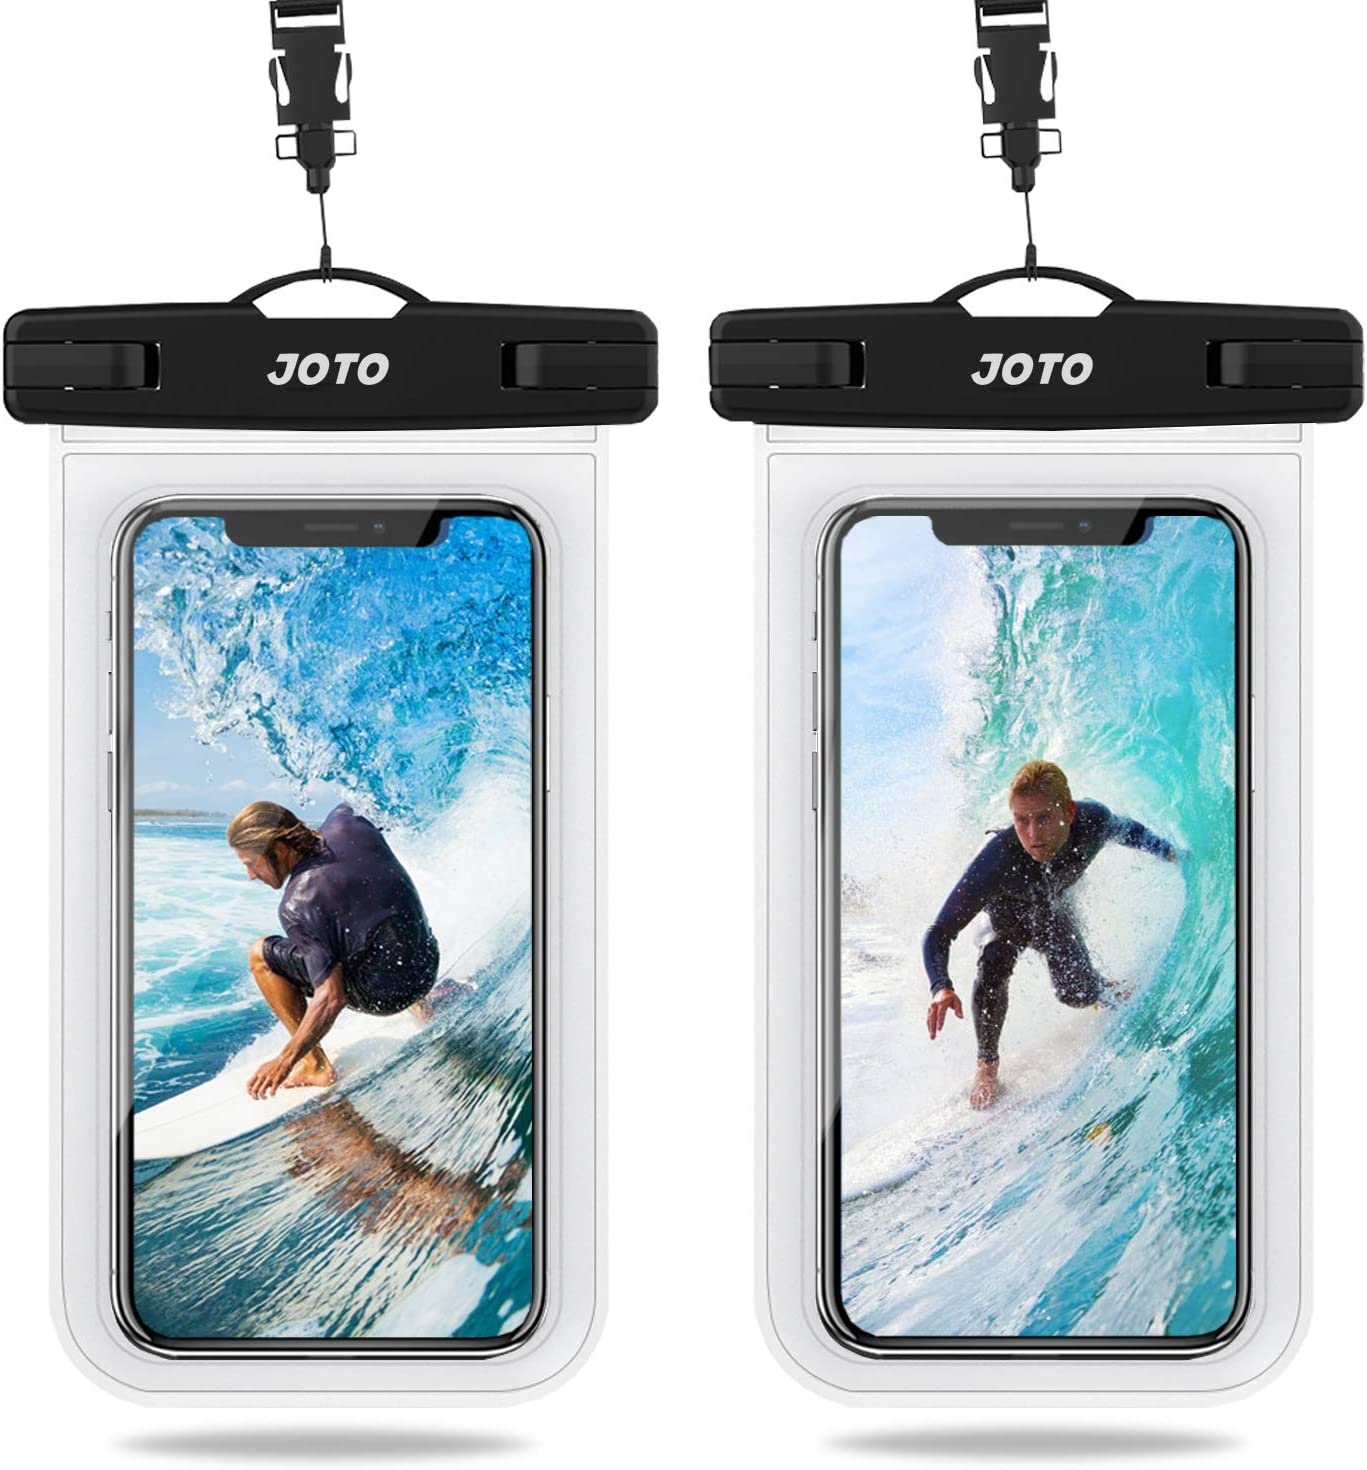 """JOTO Universal Waterproof Pouch, IPX8 Waterproof Cellphone Dry Bag Underwater Case for iPhone 11 Pro Max Xs Max XR X 8 7 6S+ SE 2020, Galaxy S20 Ultra S10 S9 S8/Note10+ 9 up to 6.9"""" -2 Pack, Clear"""